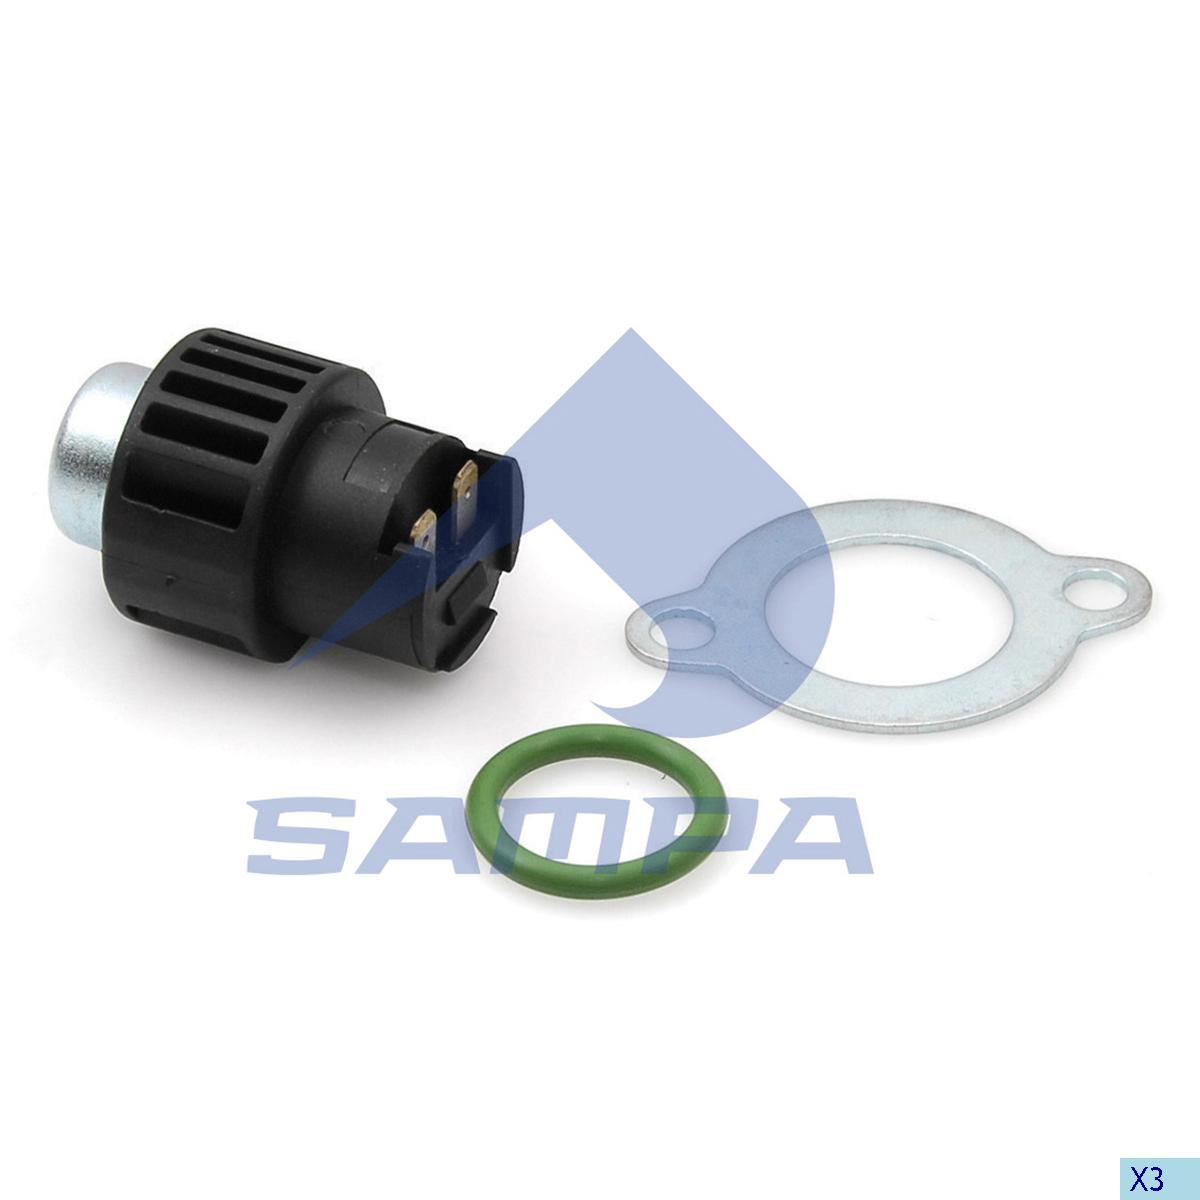 Sensor, Gear Selector Housing, Volvo, Gear Box